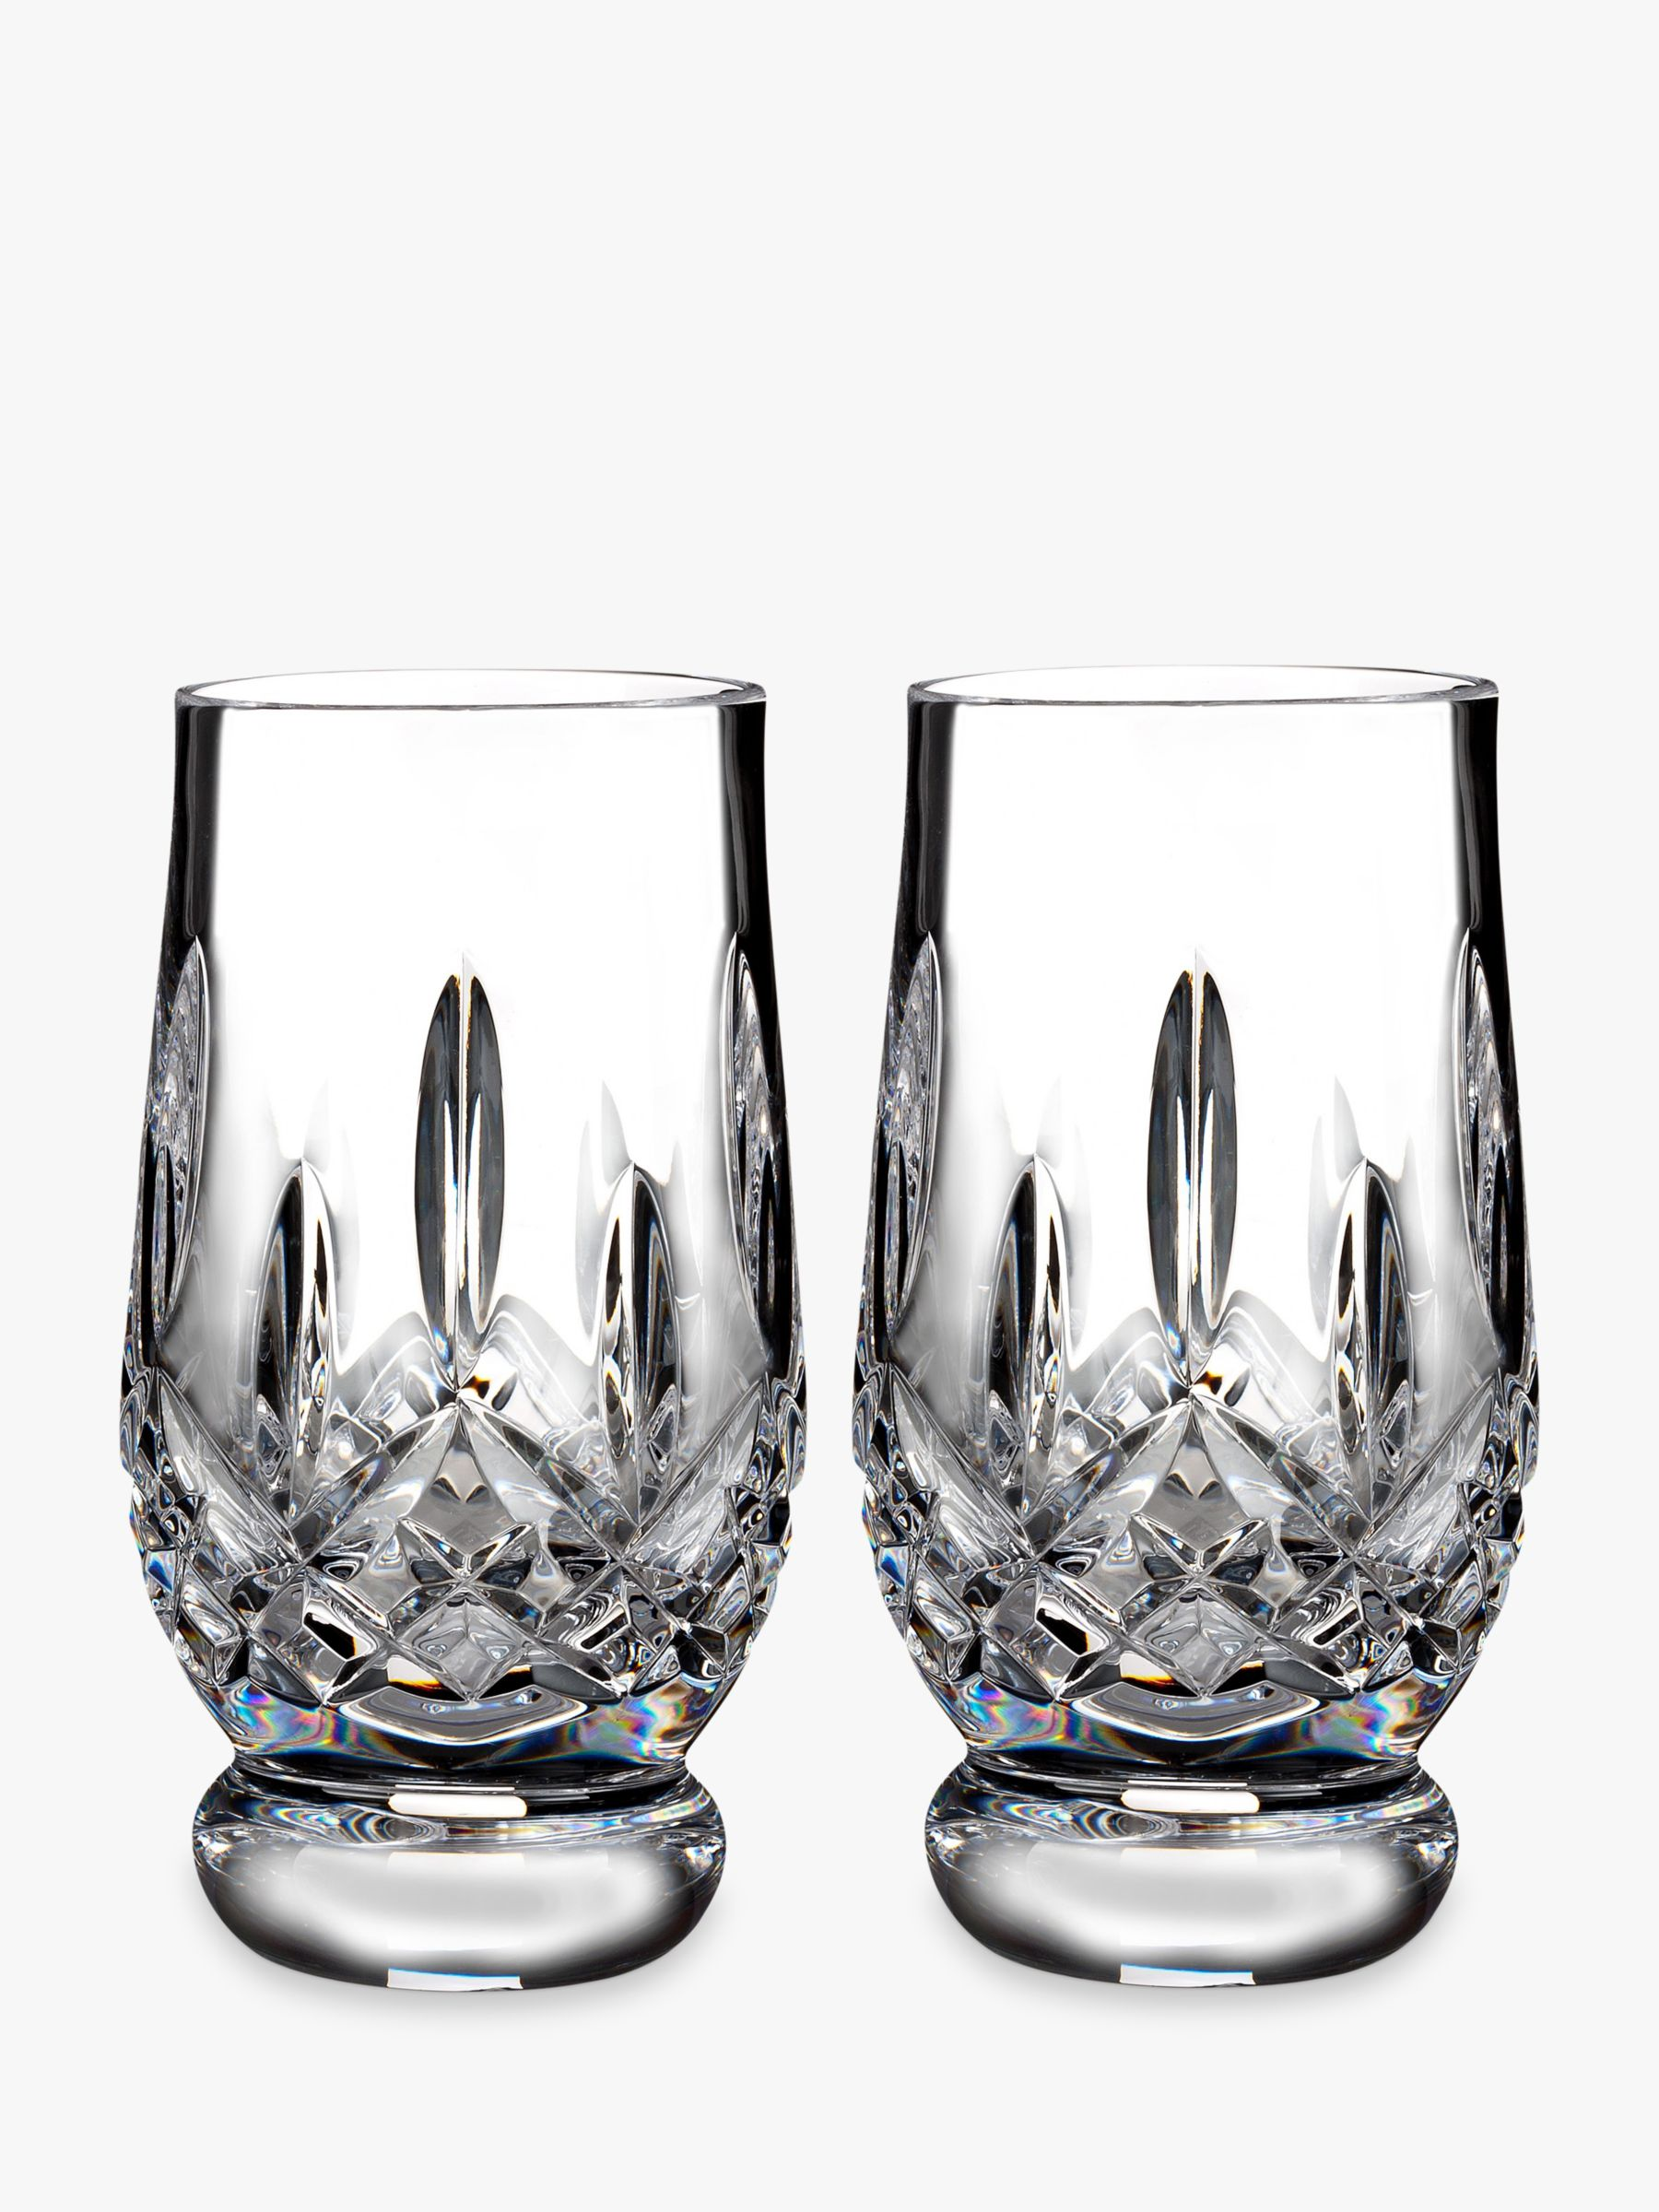 Waterford Waterford Lismore Connoisseur Cut Lead Crystal Whisky Tasting Tumblers, 170ml, Set of 2